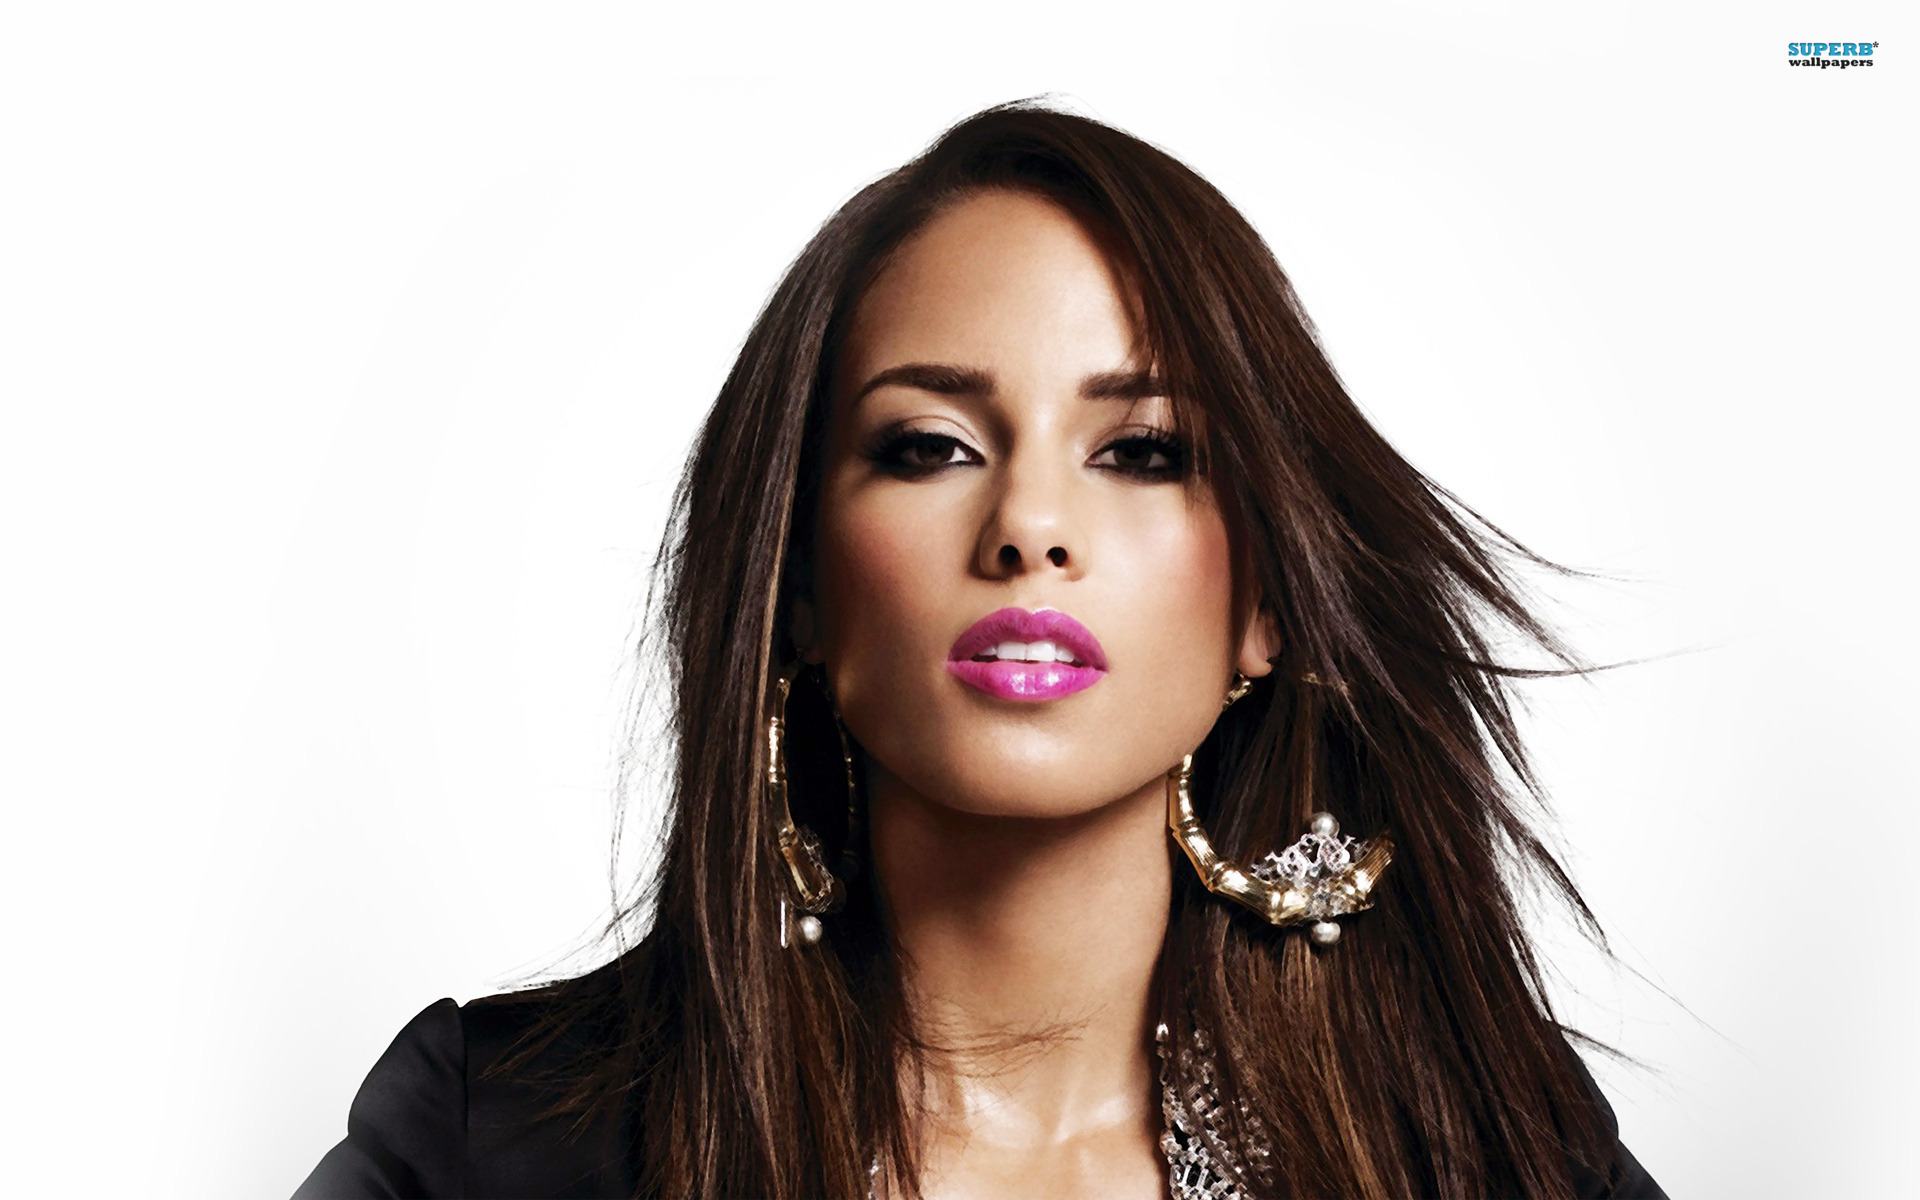 Please check our latest hd wallpaper widescreen below and bring beauty to your desktop. Alicia Keys Wallpaper